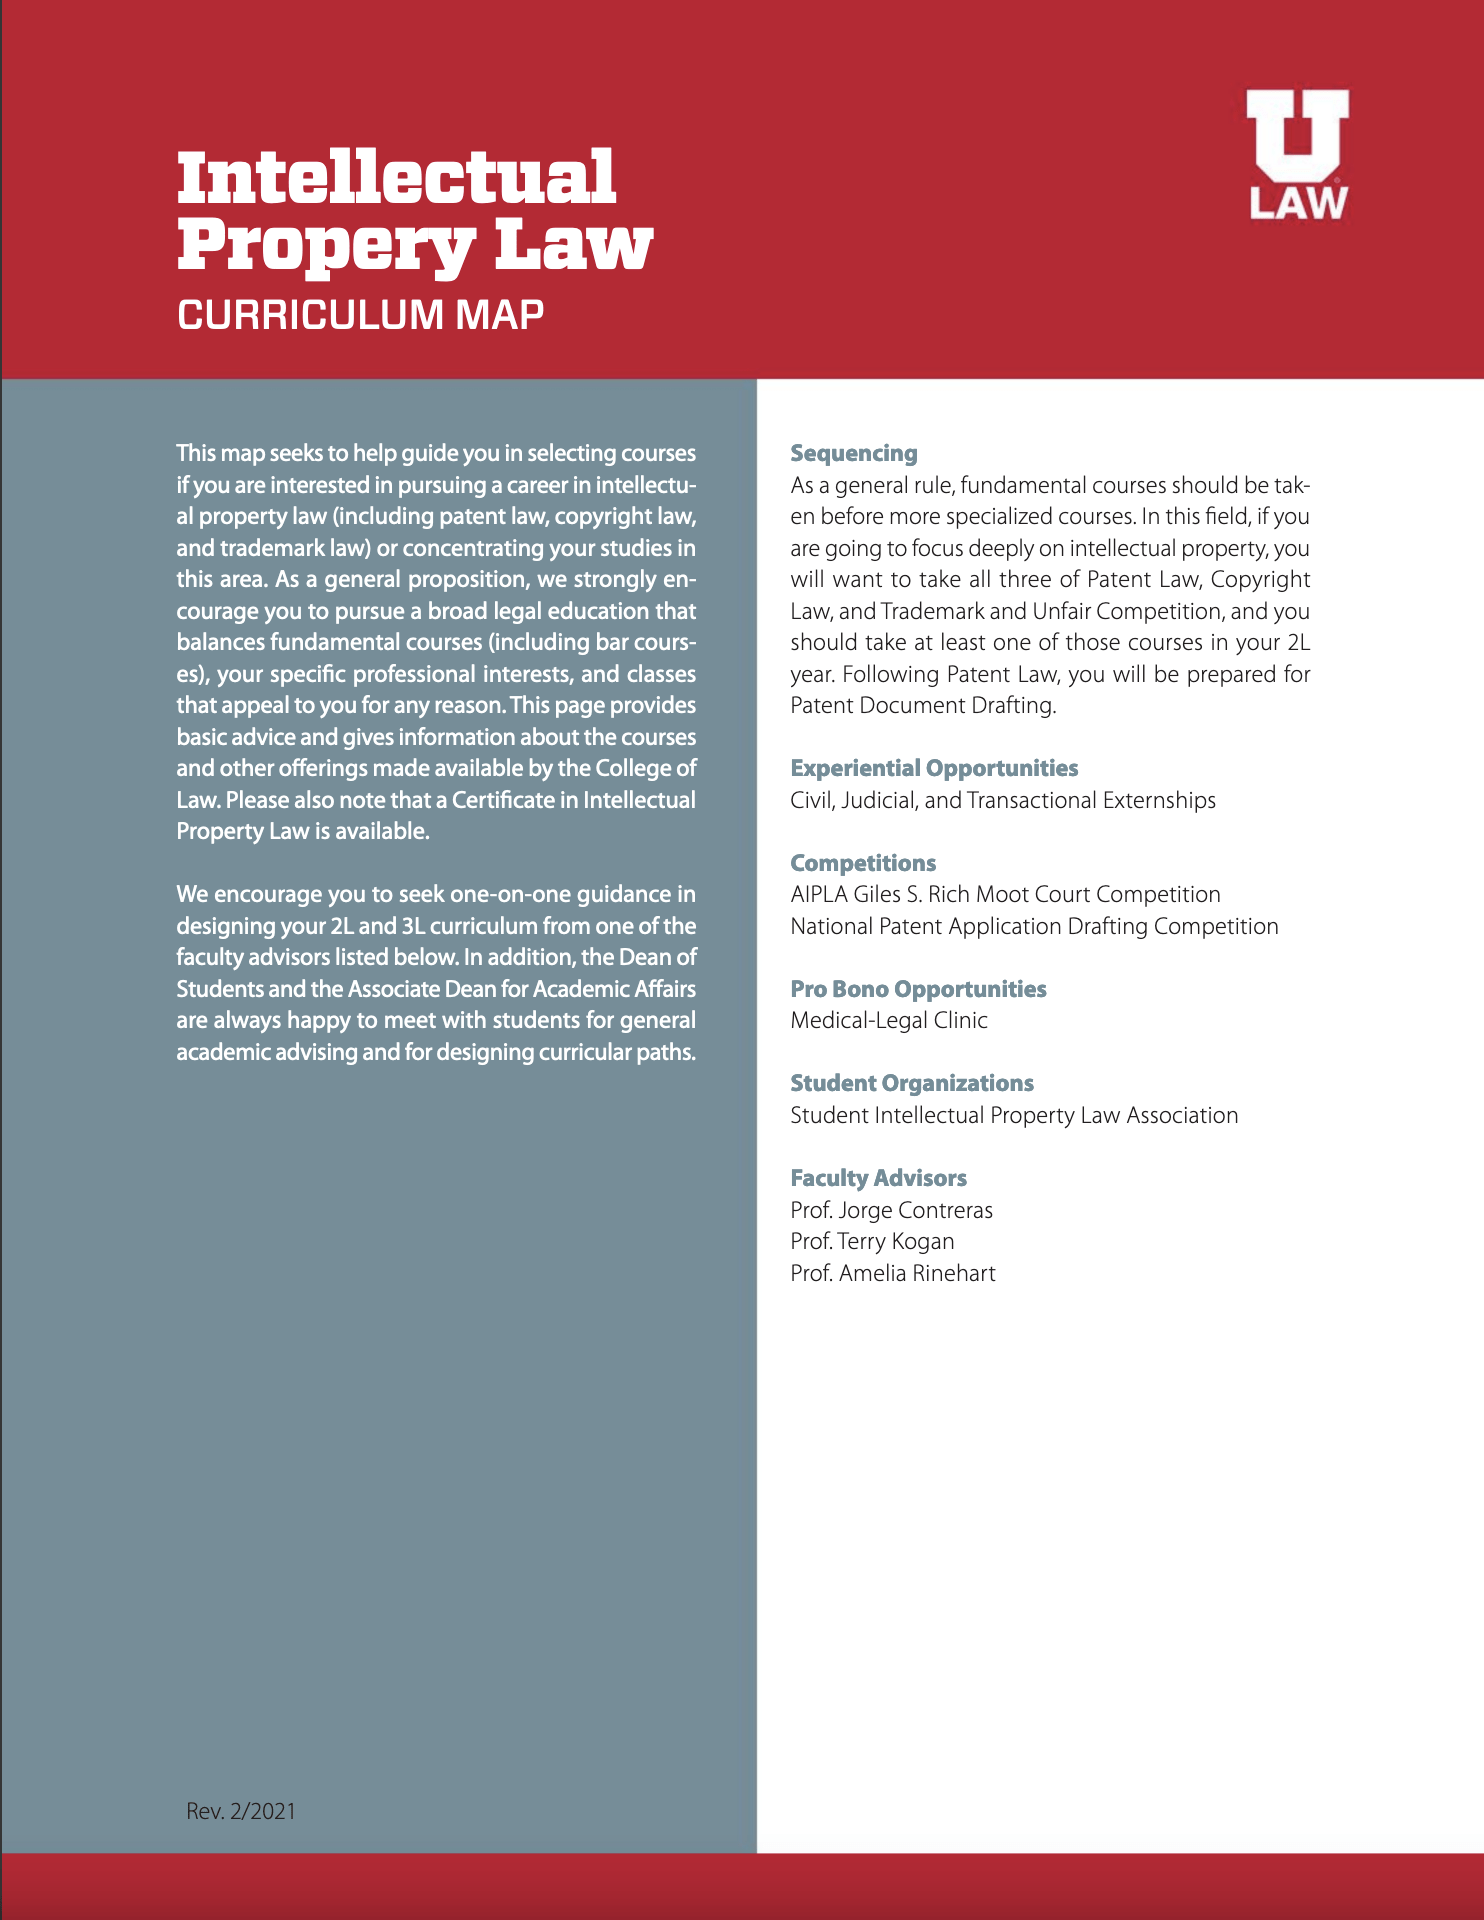 Intellectual Property Law Curriculum Map